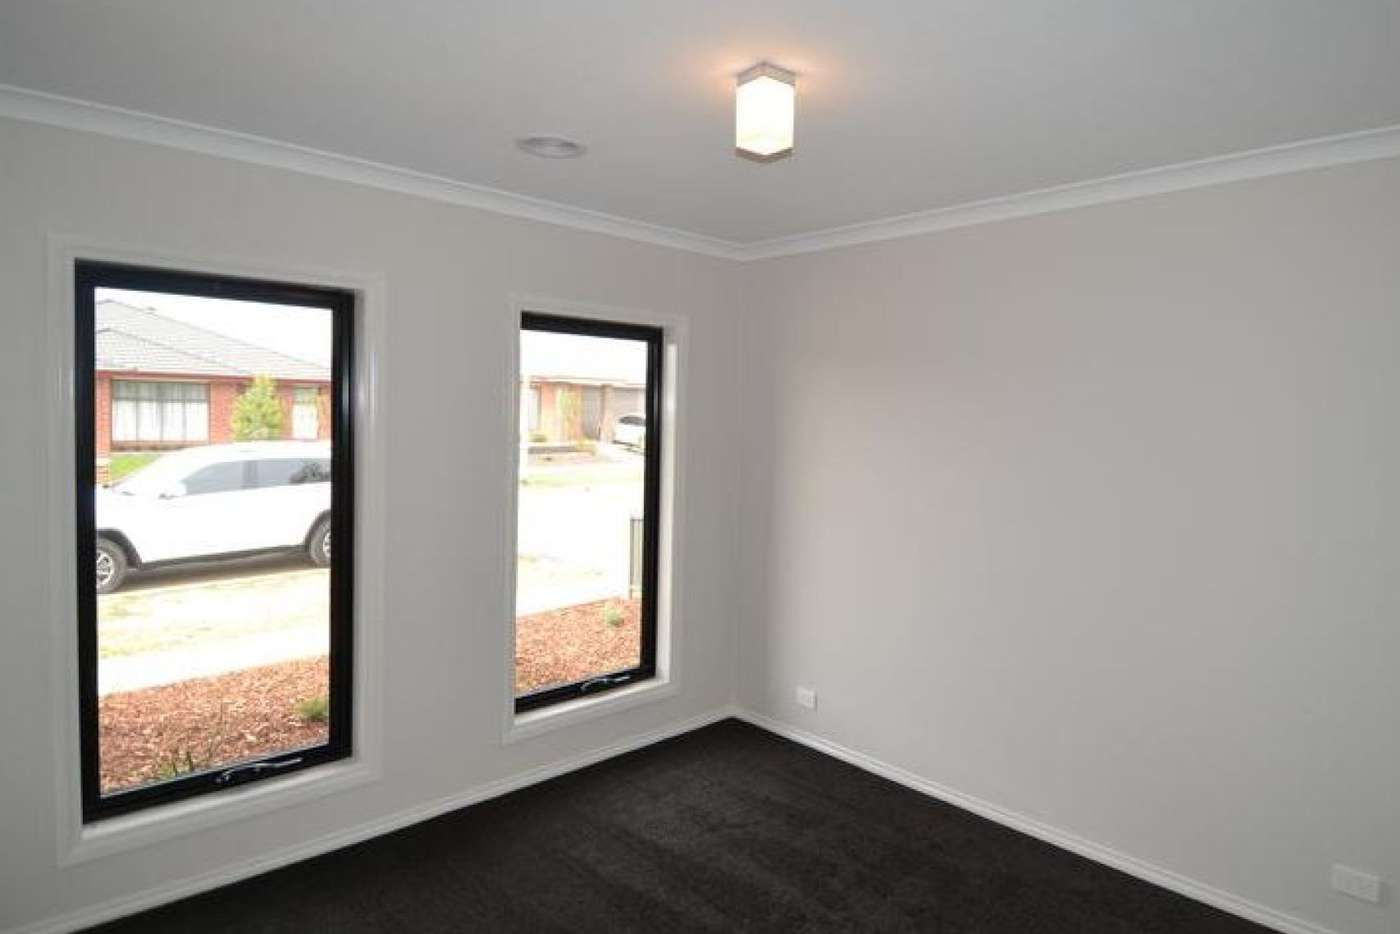 Sixth view of Homely house listing, 12 Wilmott Street, Alfredton VIC 3350